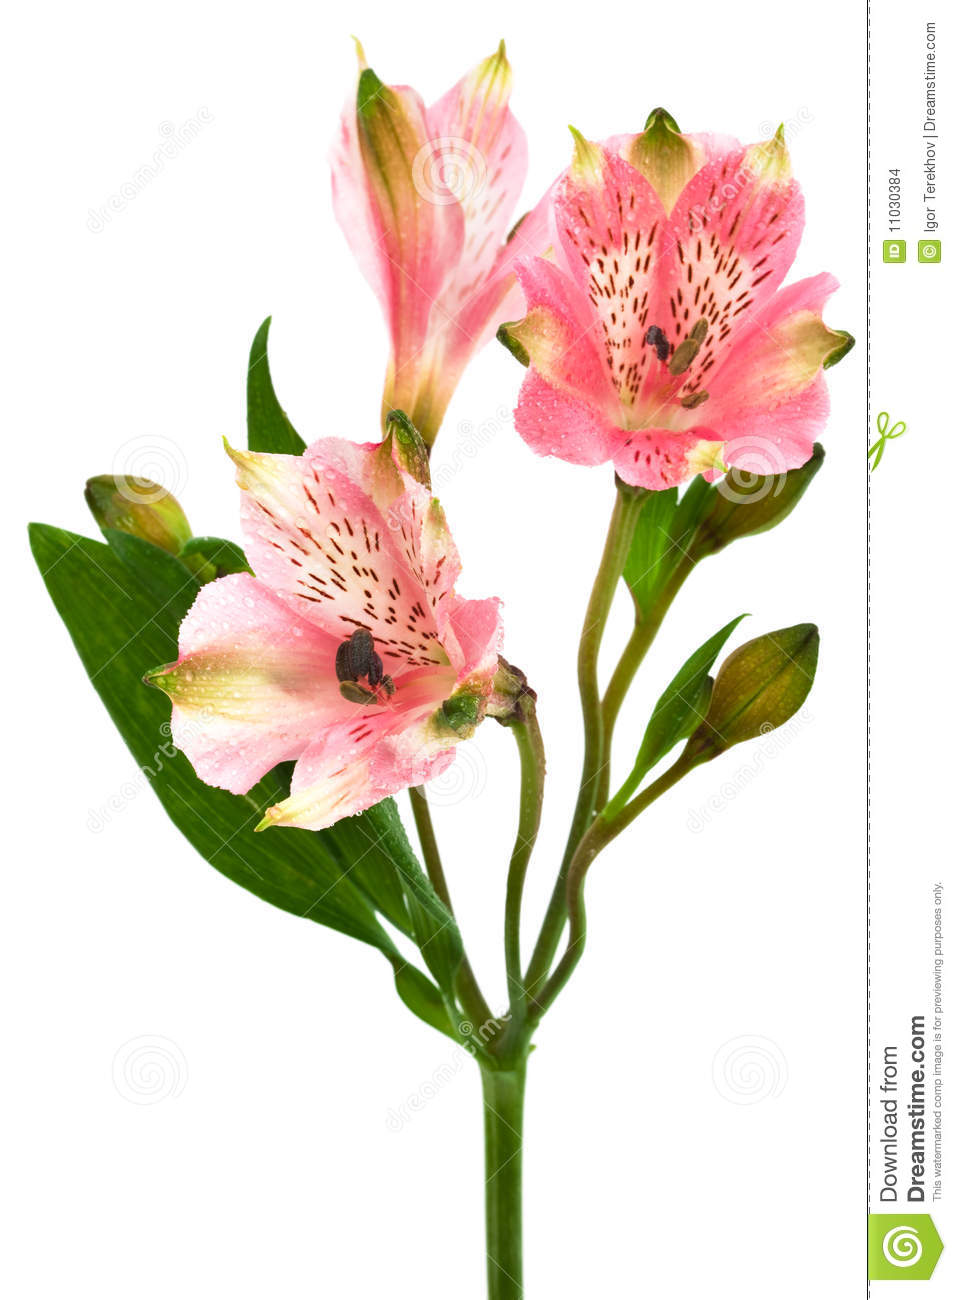 Beautiful pink alstroemeria on a white background.